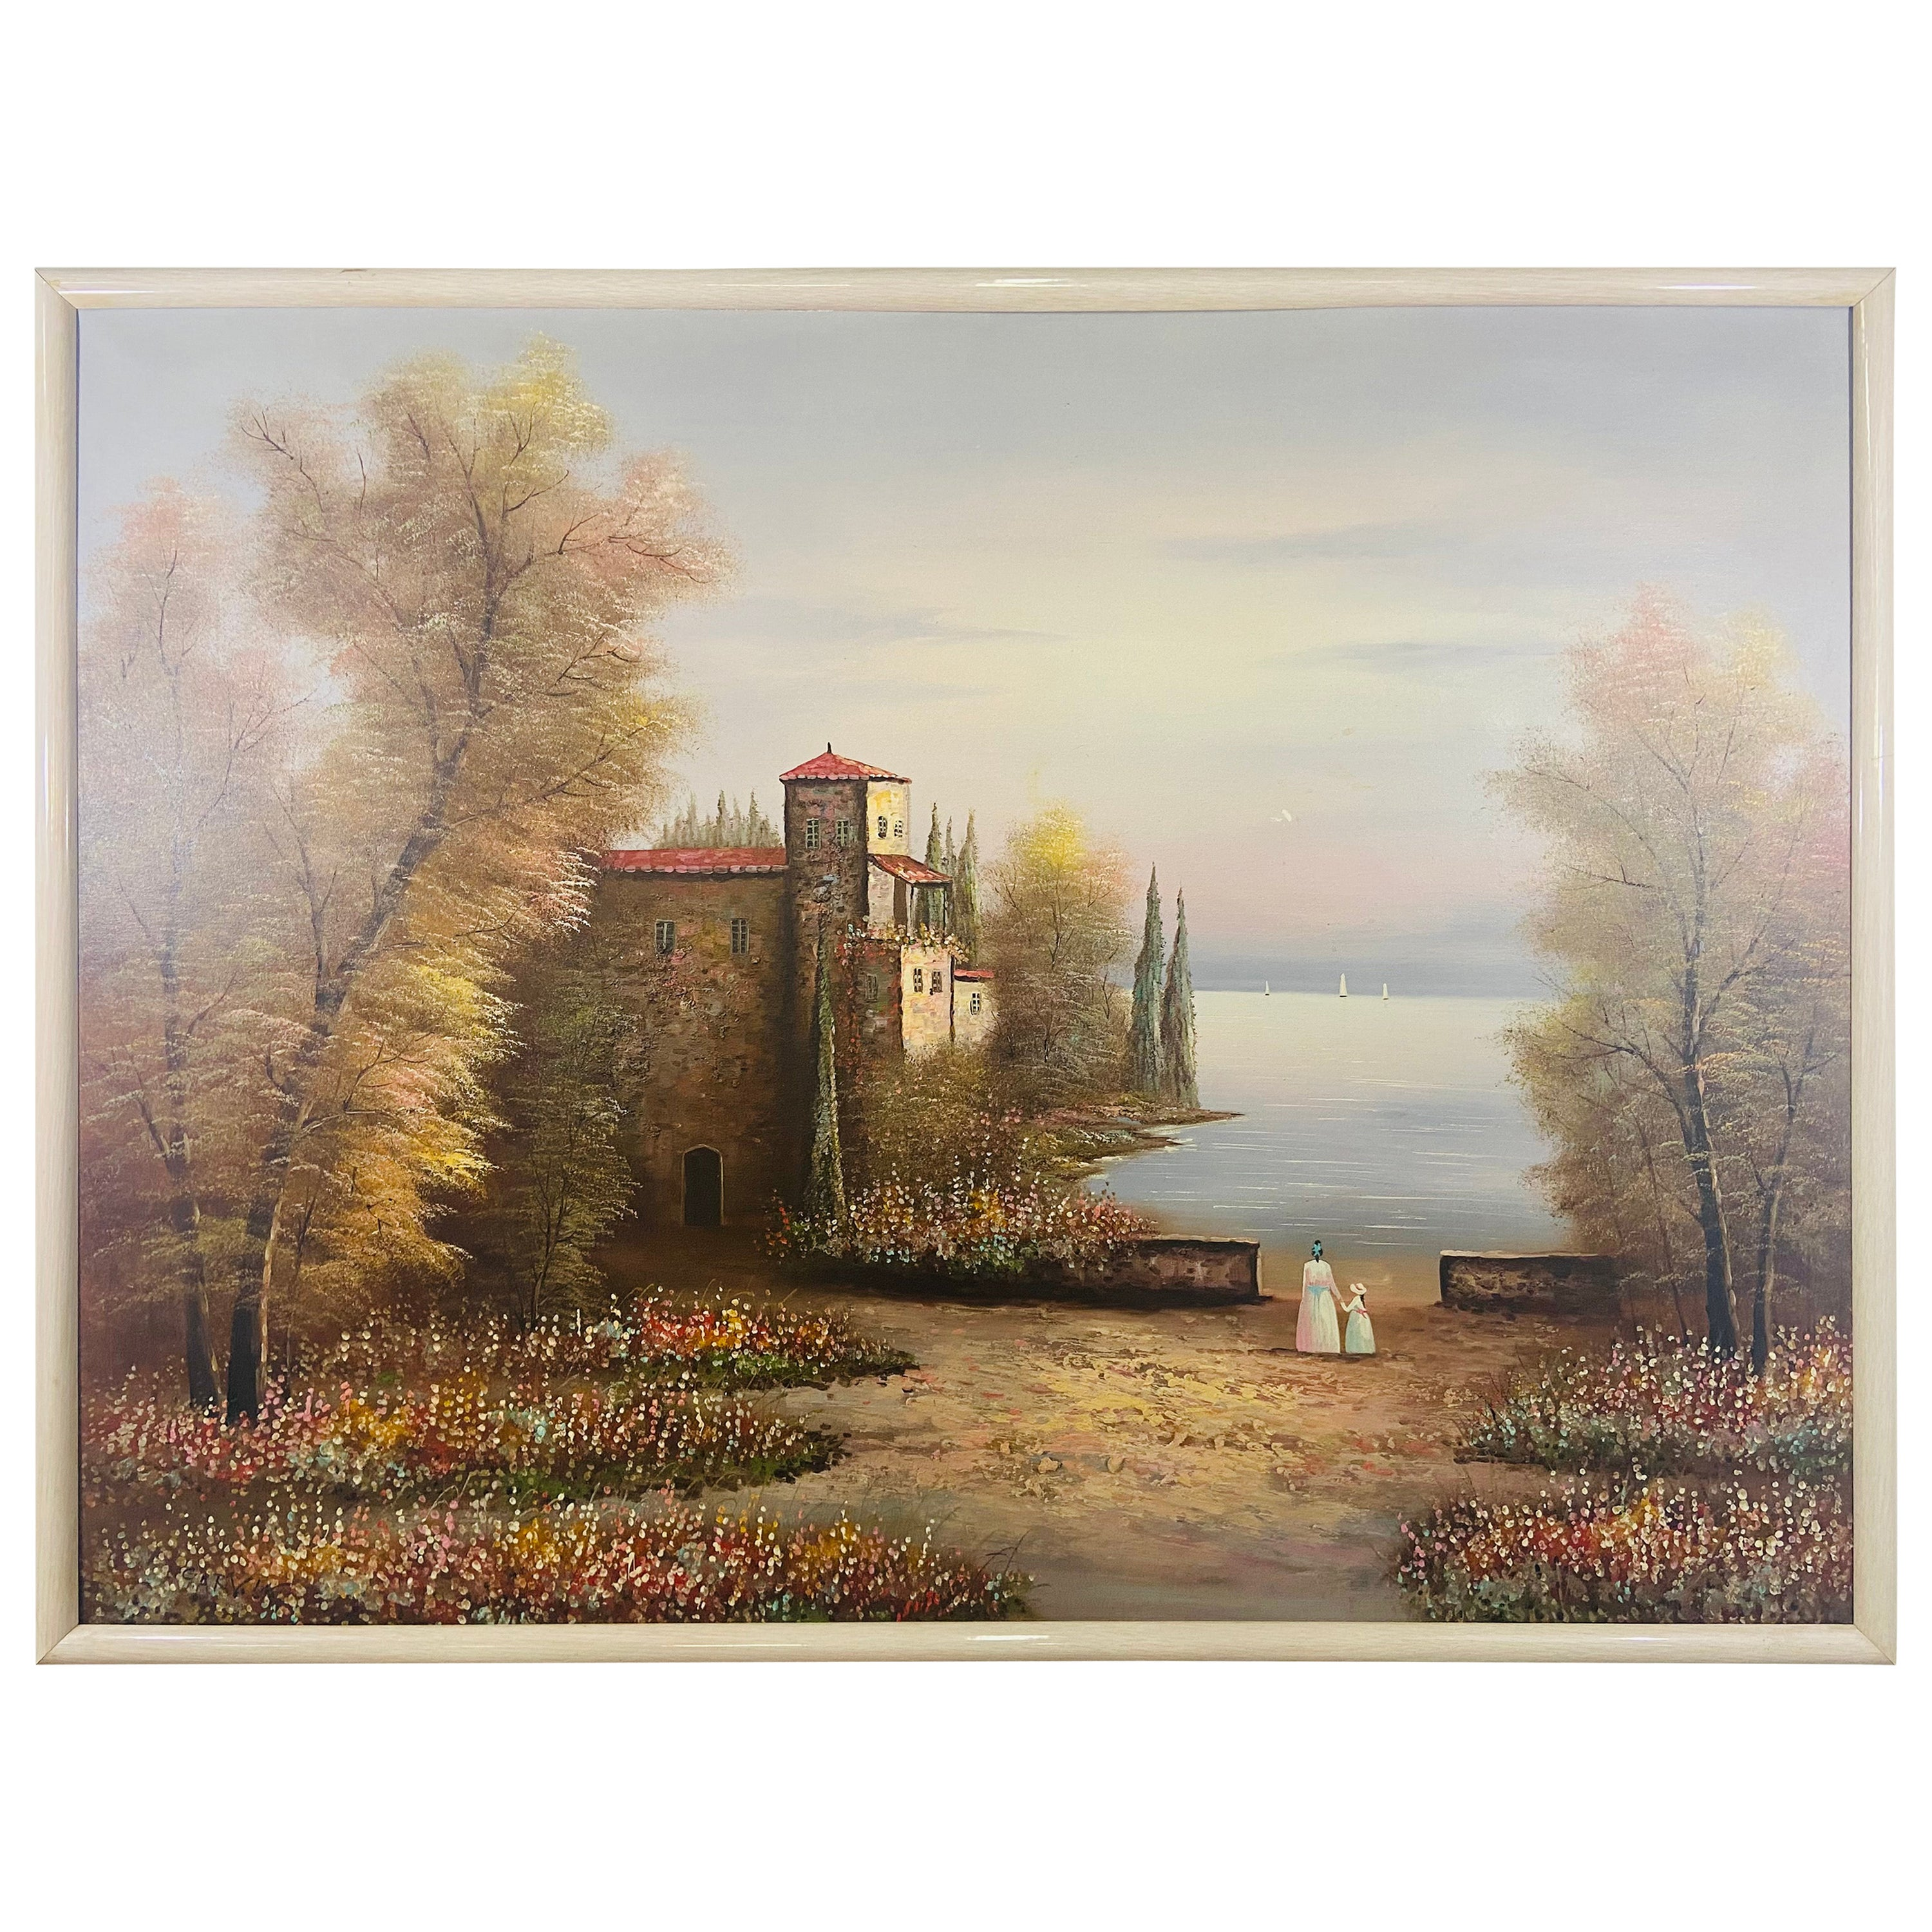 Large Landscape Castle on a Lake  Oil on Canvas Painting Signed Garvin